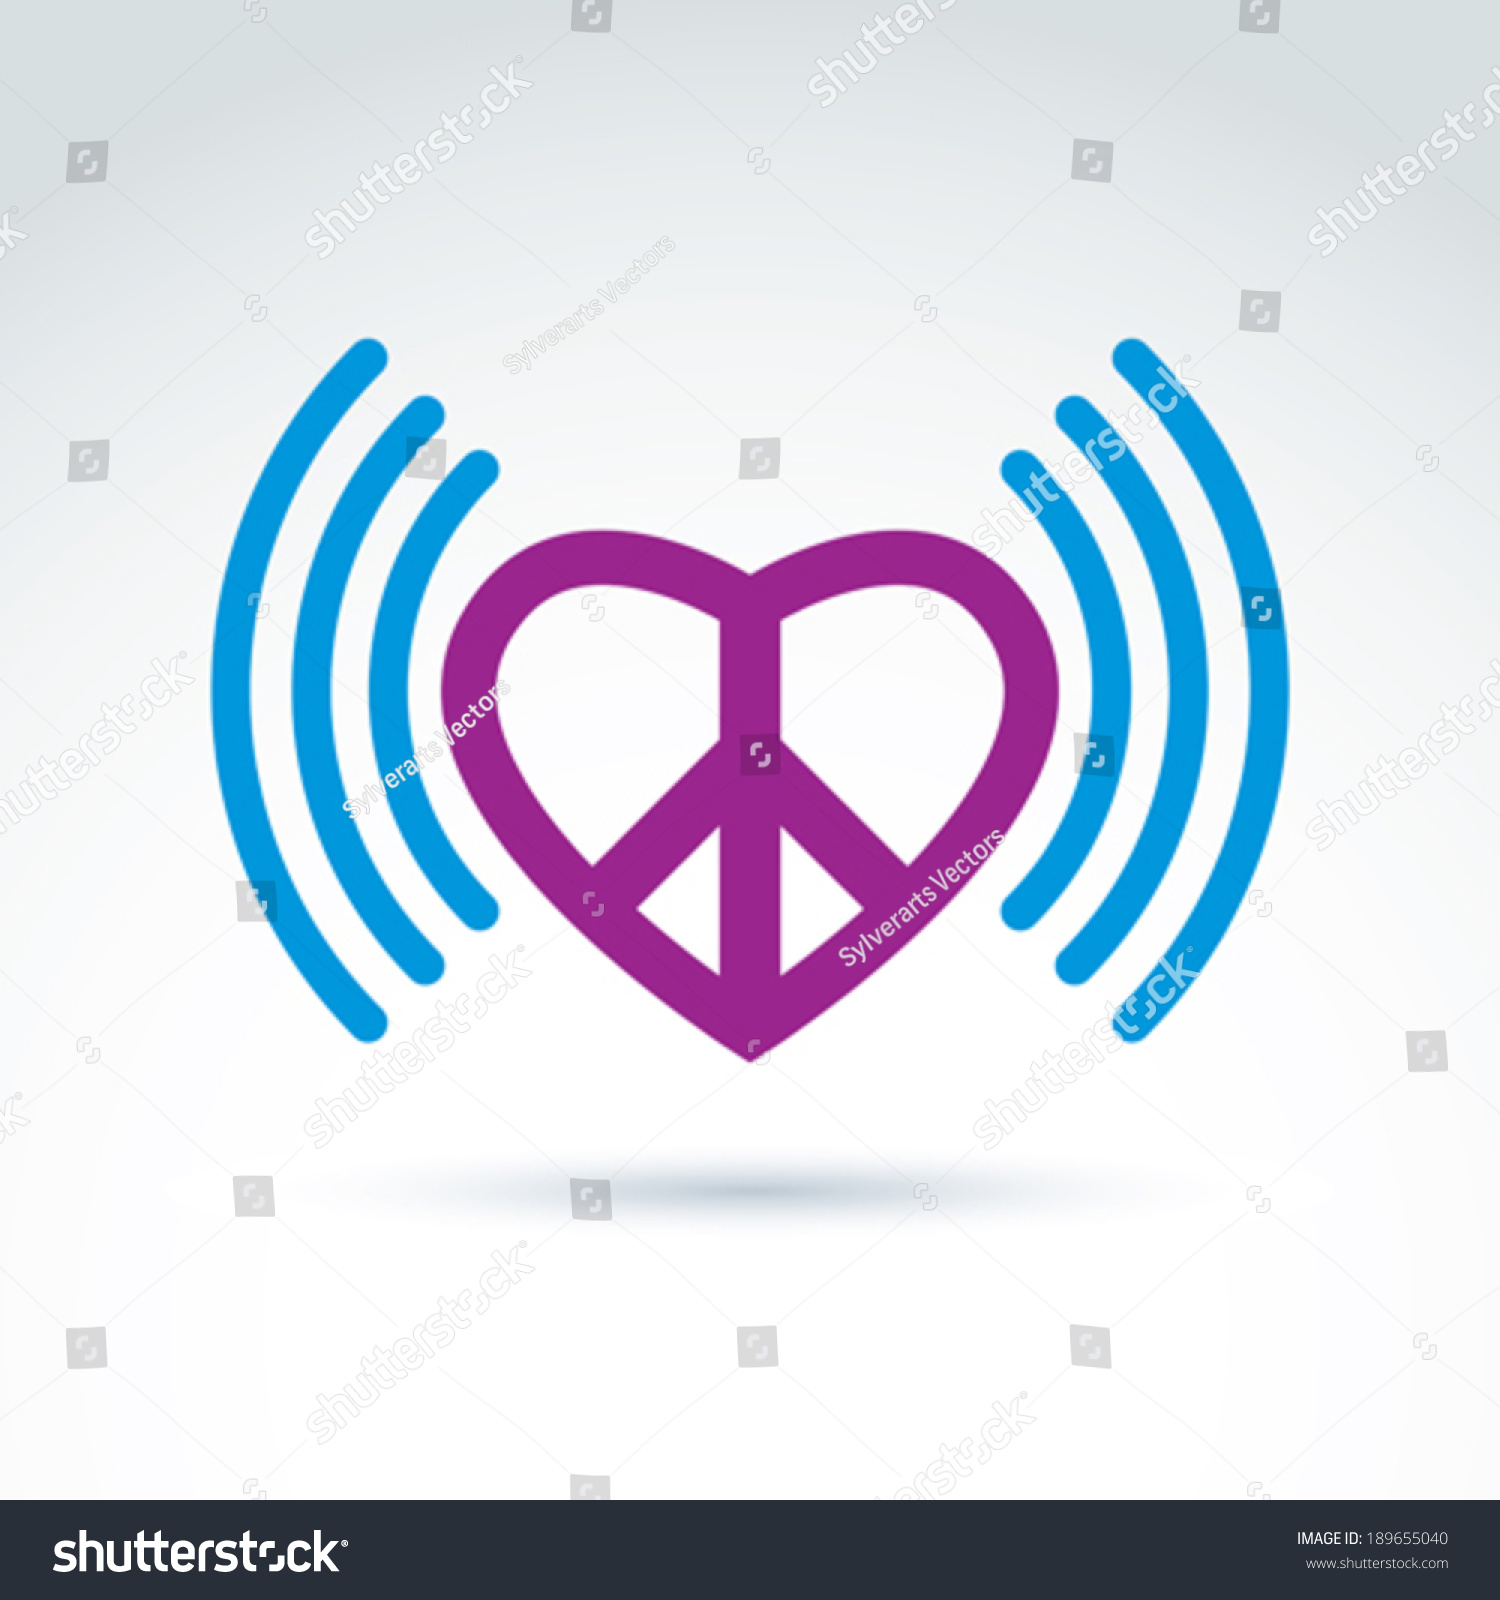 Vector loving heart icon peace symbol stock vector 189655040 vector loving heart icon with peace symbol from 60th podcast sign on antiwar and love biocorpaavc